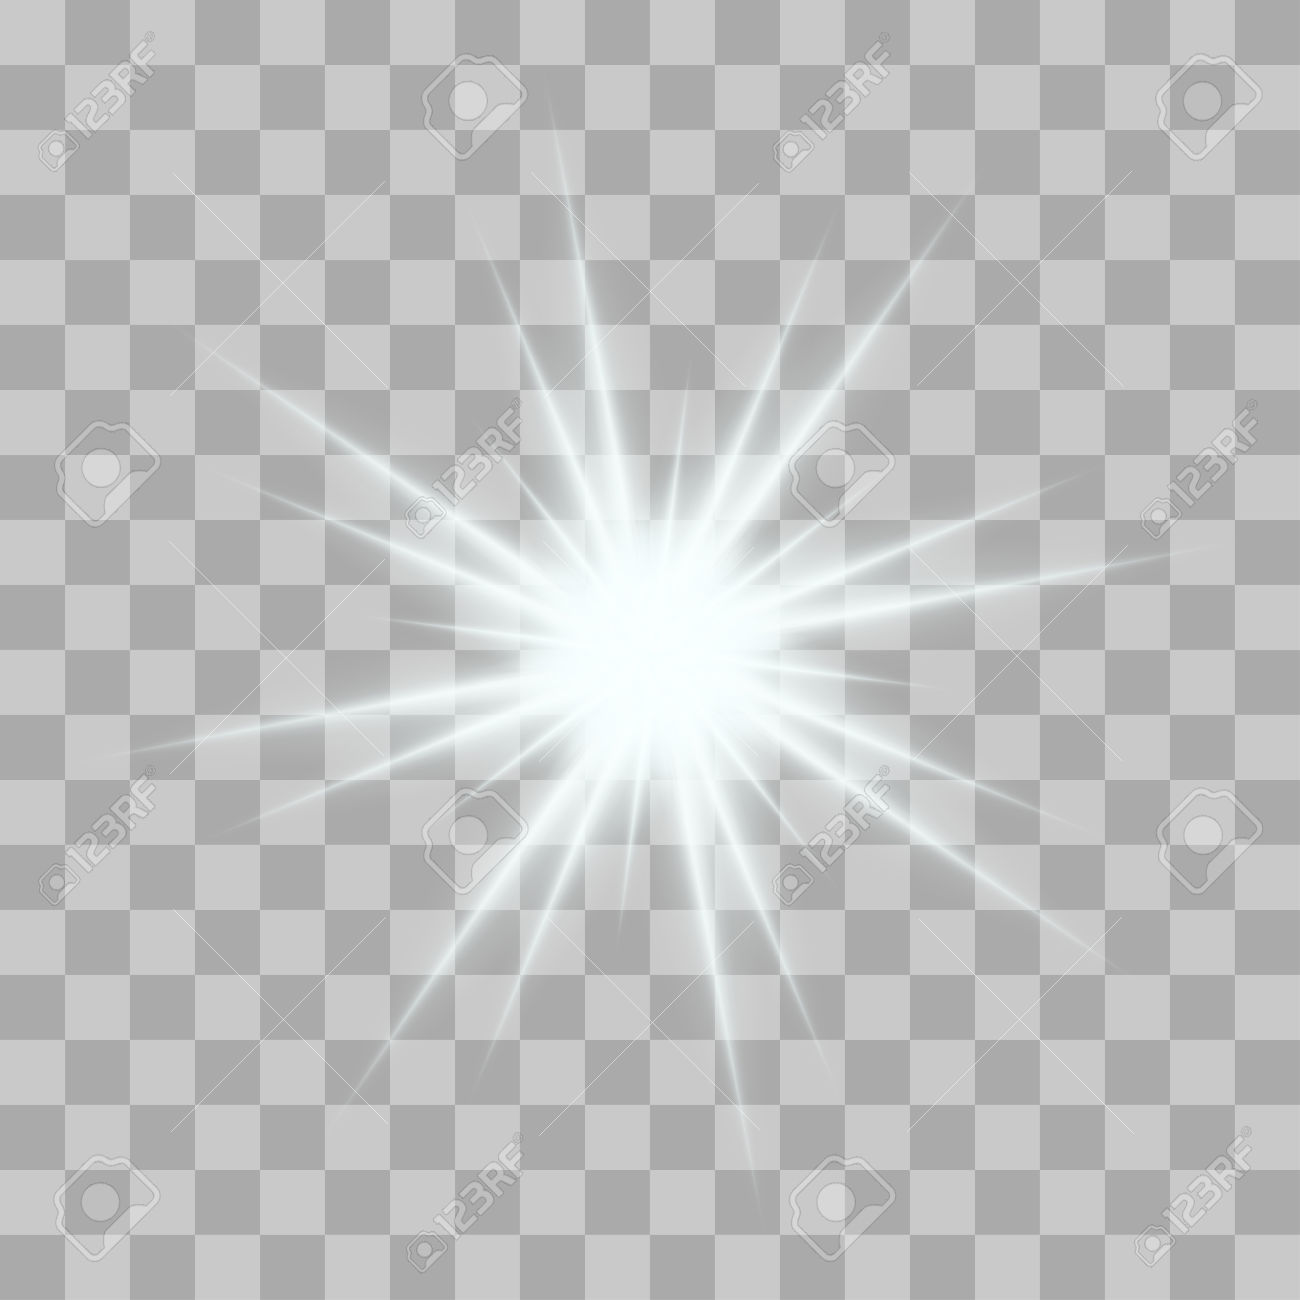 24,732 Light Glare Stock Vector Illustration And Royalty Free.